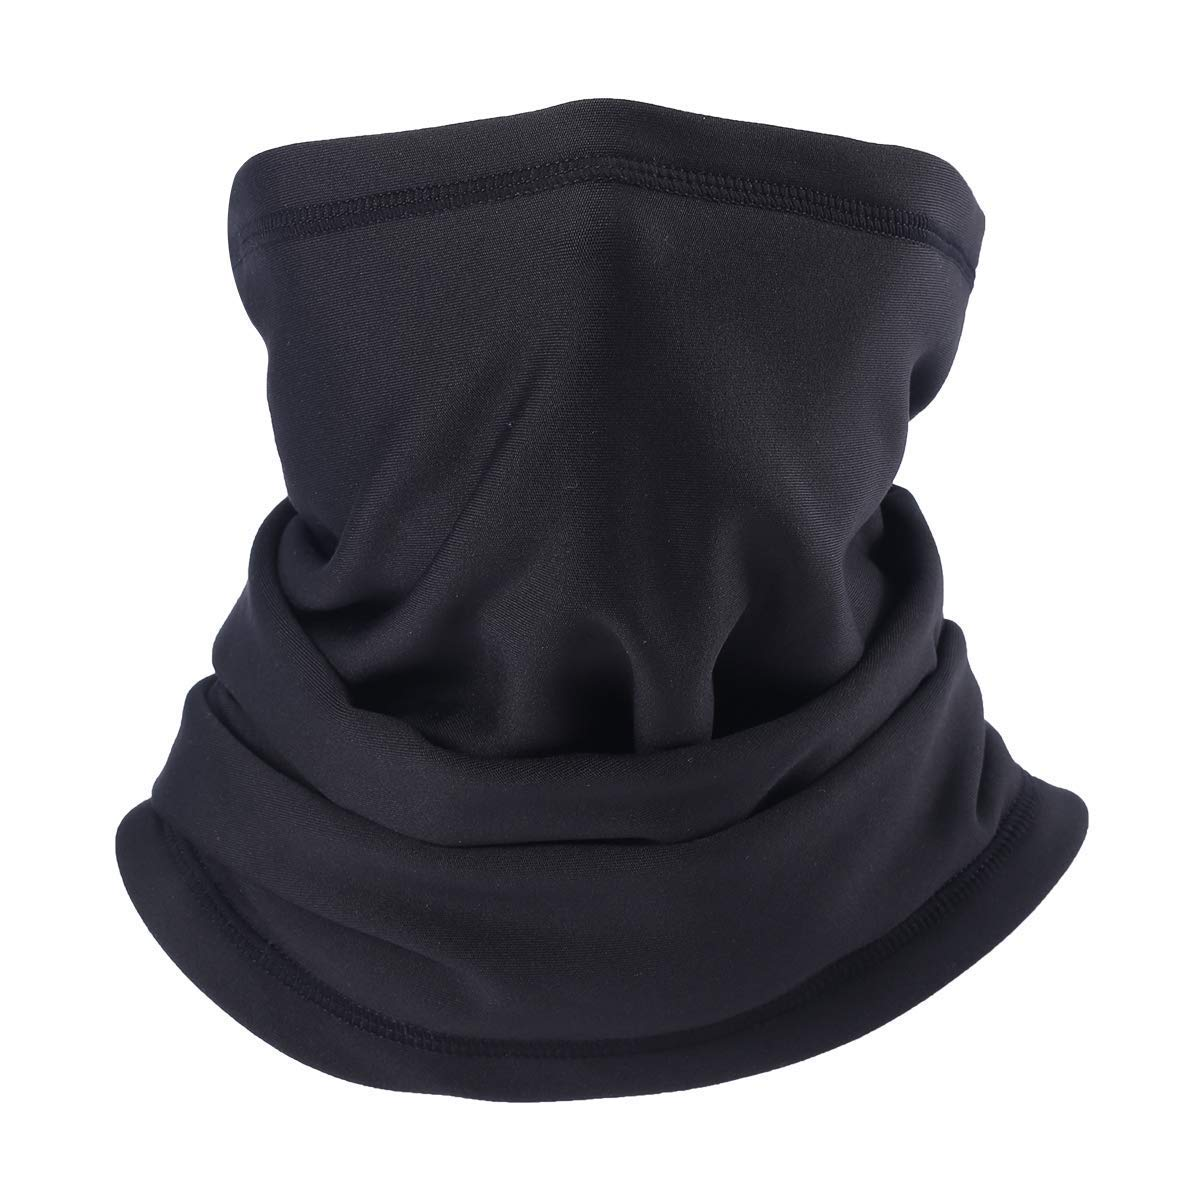 Oumers Neck Gaiter Warmer Face Mask Scarf for Men & Women in Outside Winter Activities/Windproof, Breathable